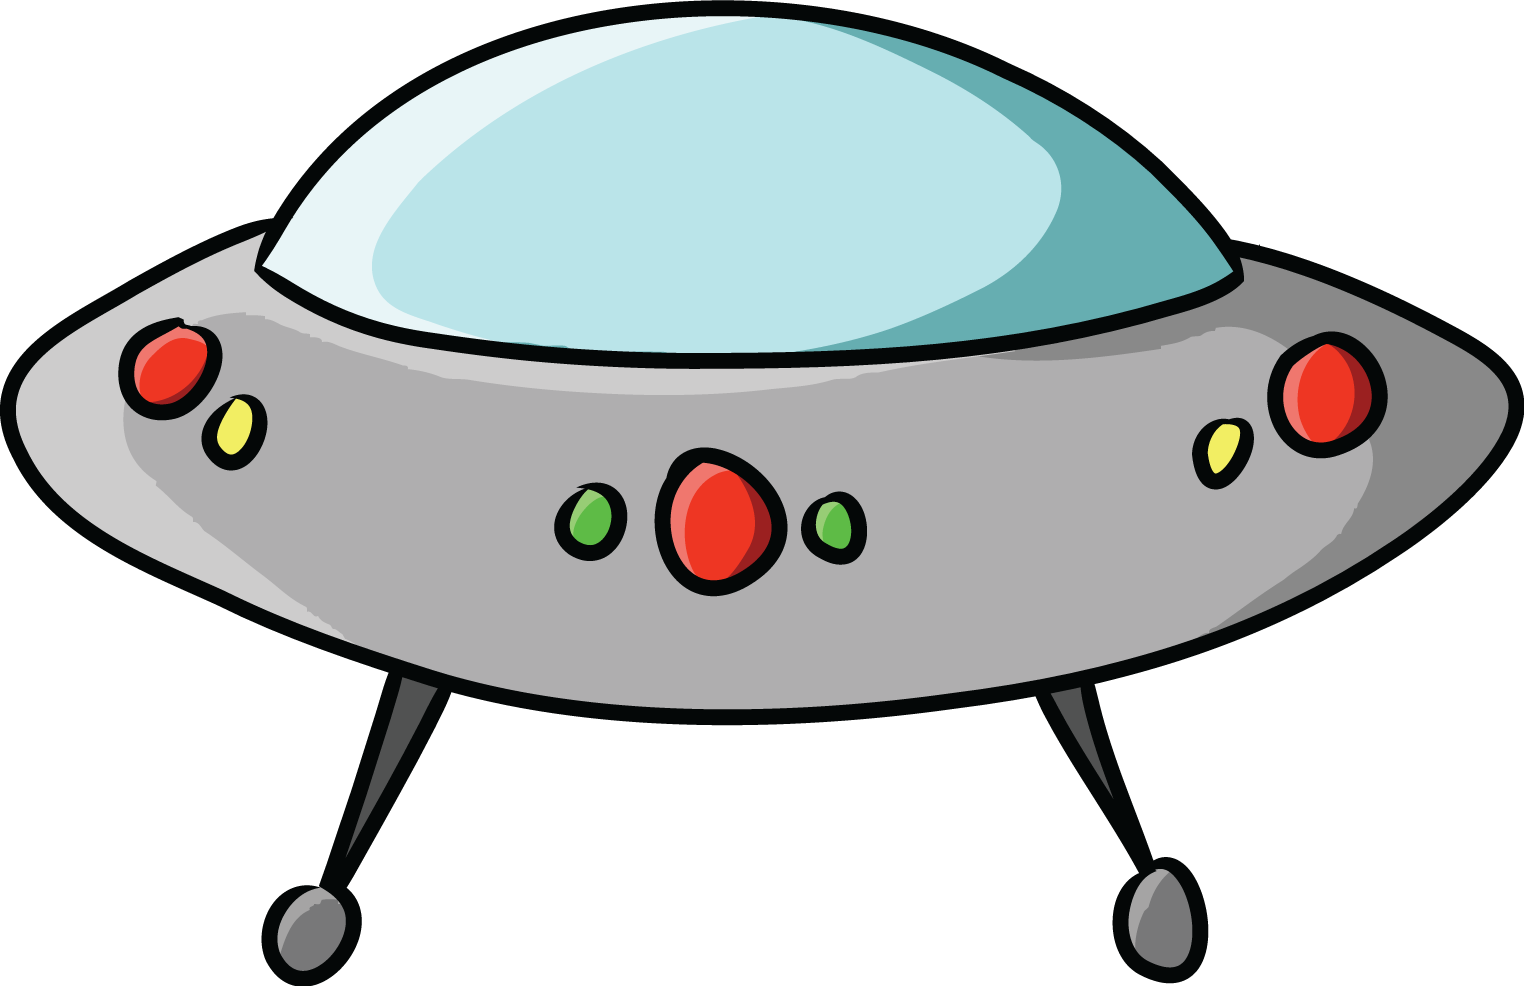 Spaceship clipart transparent background. Ufo